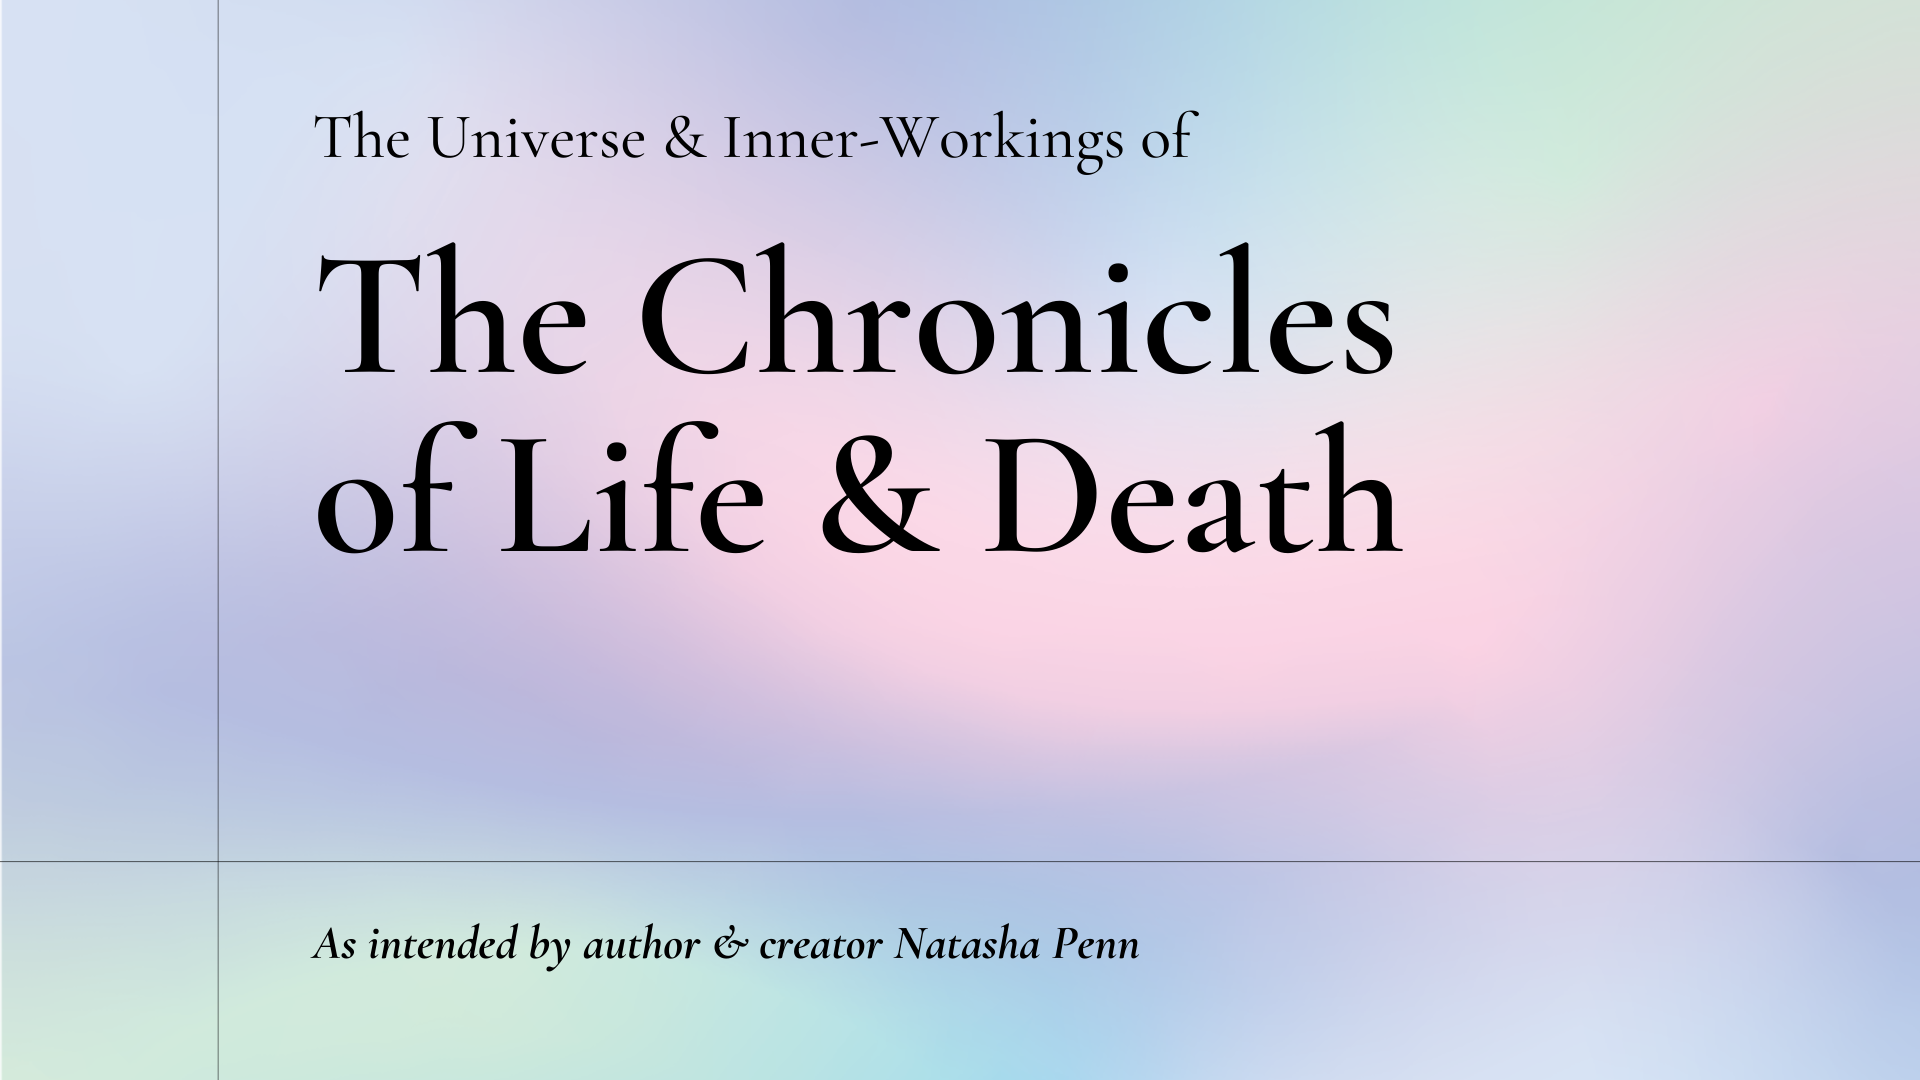 Text: The Universe and Inner-Workings of The Chronicles of Life and Death, as intended by author and creator Natasha Penn.